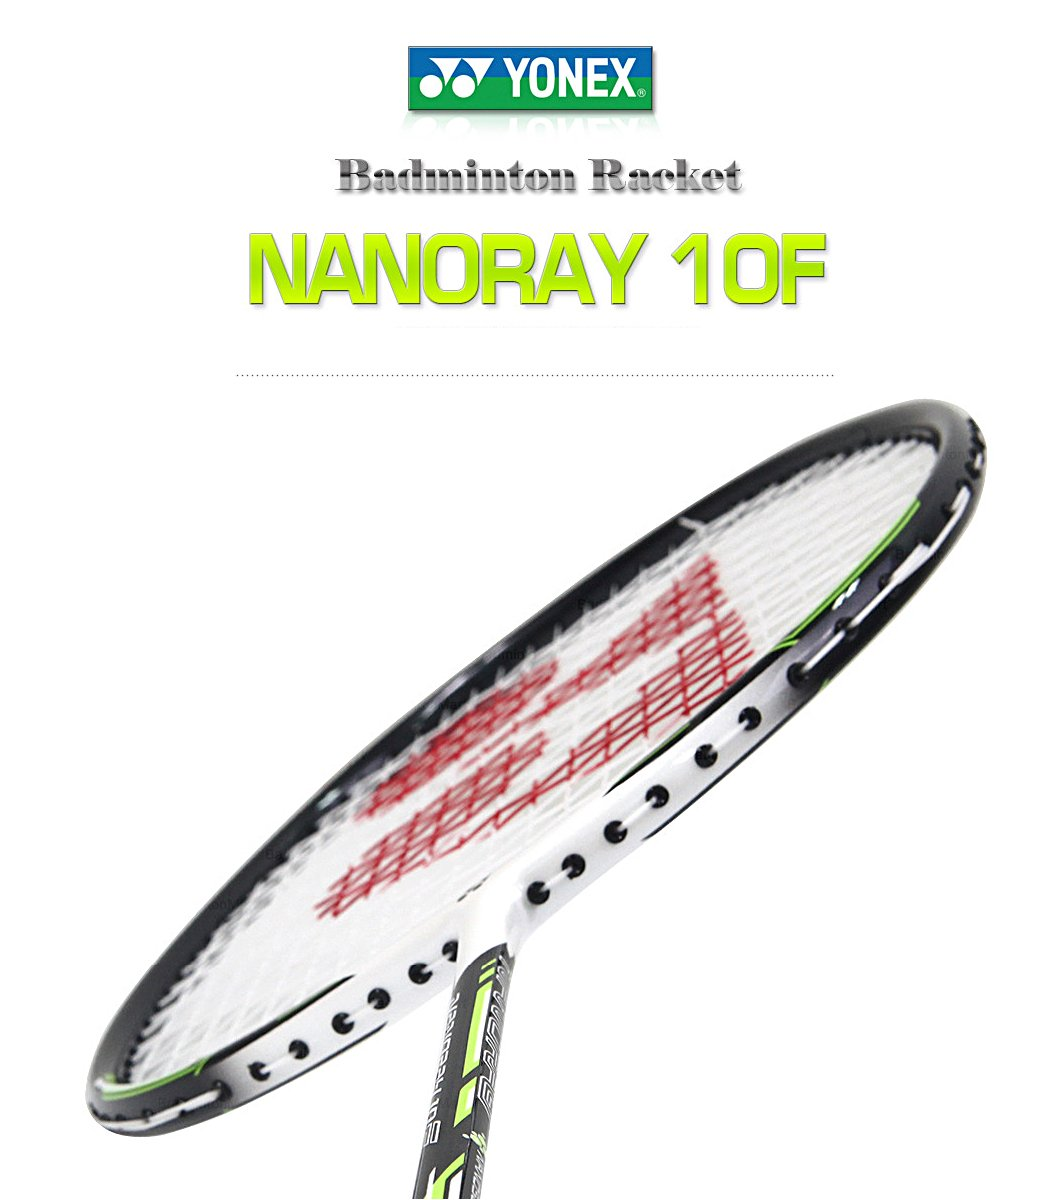 Yonex NANORAY 10F NEW Badminton Racket 2017 Racquet Lime 4U/G5 Pre-strung with a Half-length Cover (NR10F-LIME) by Yonex (Image #1)